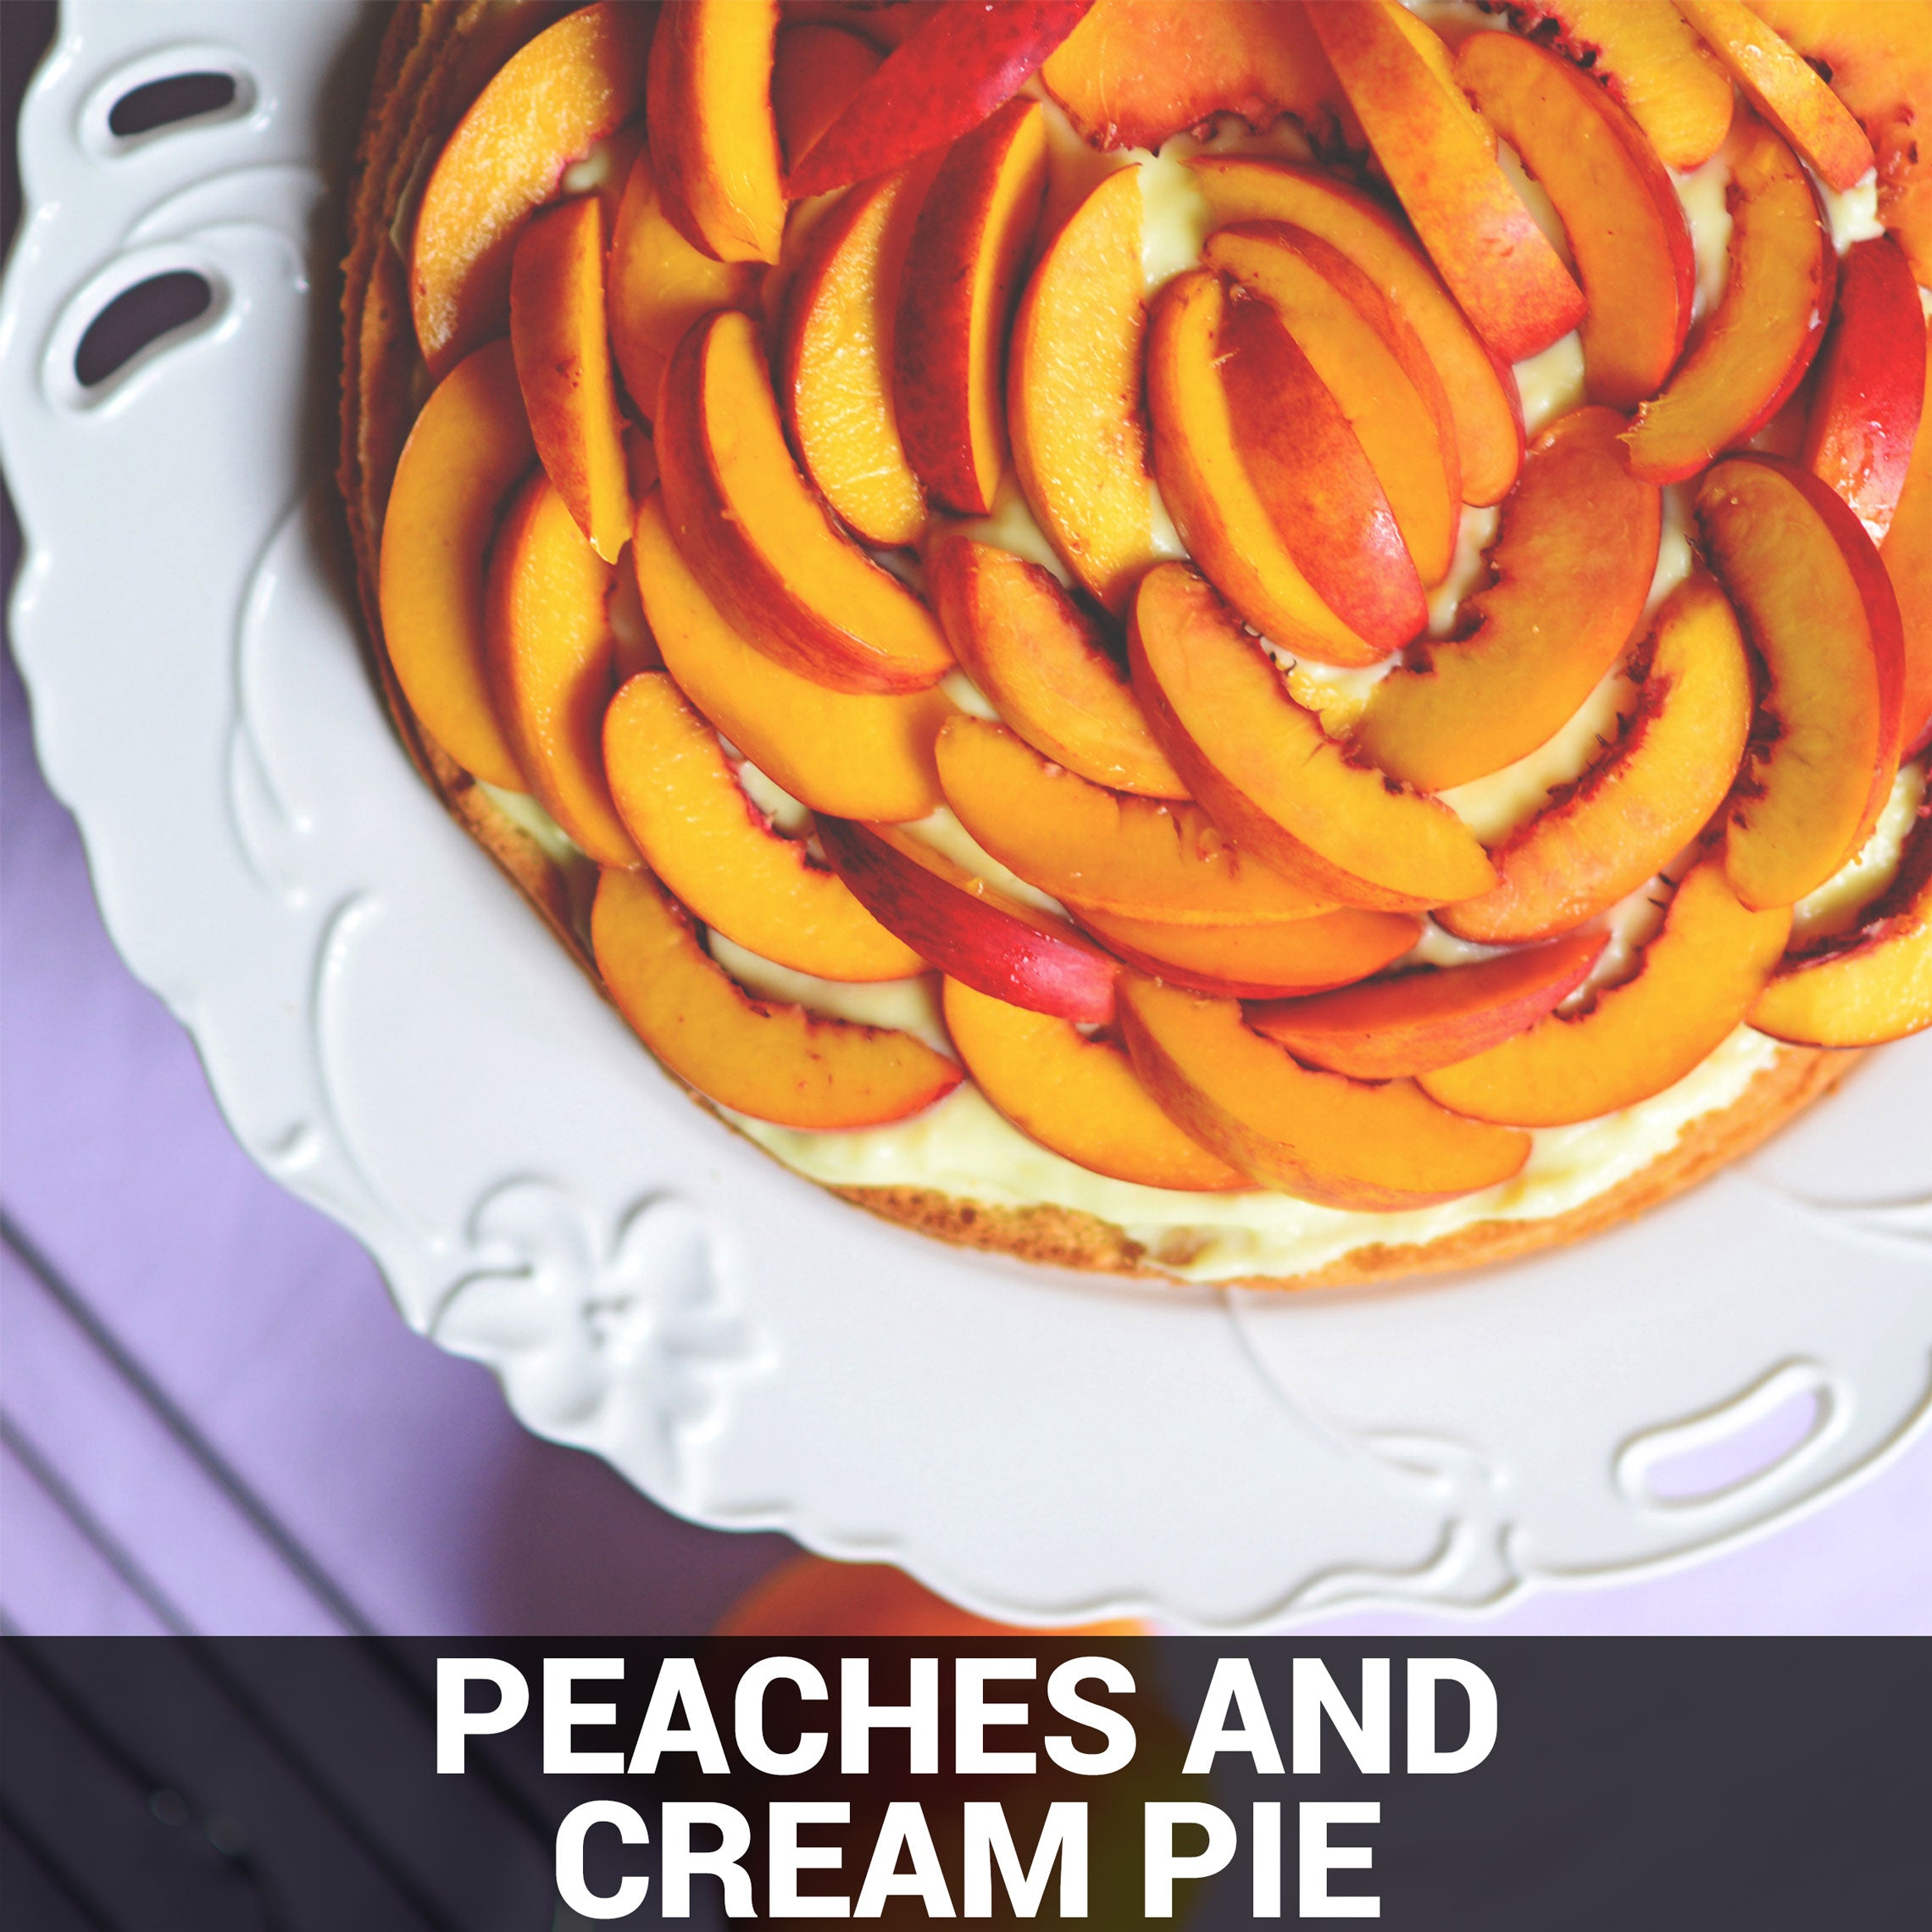 Peaches and Cream Pie Recipe - Foods Alive